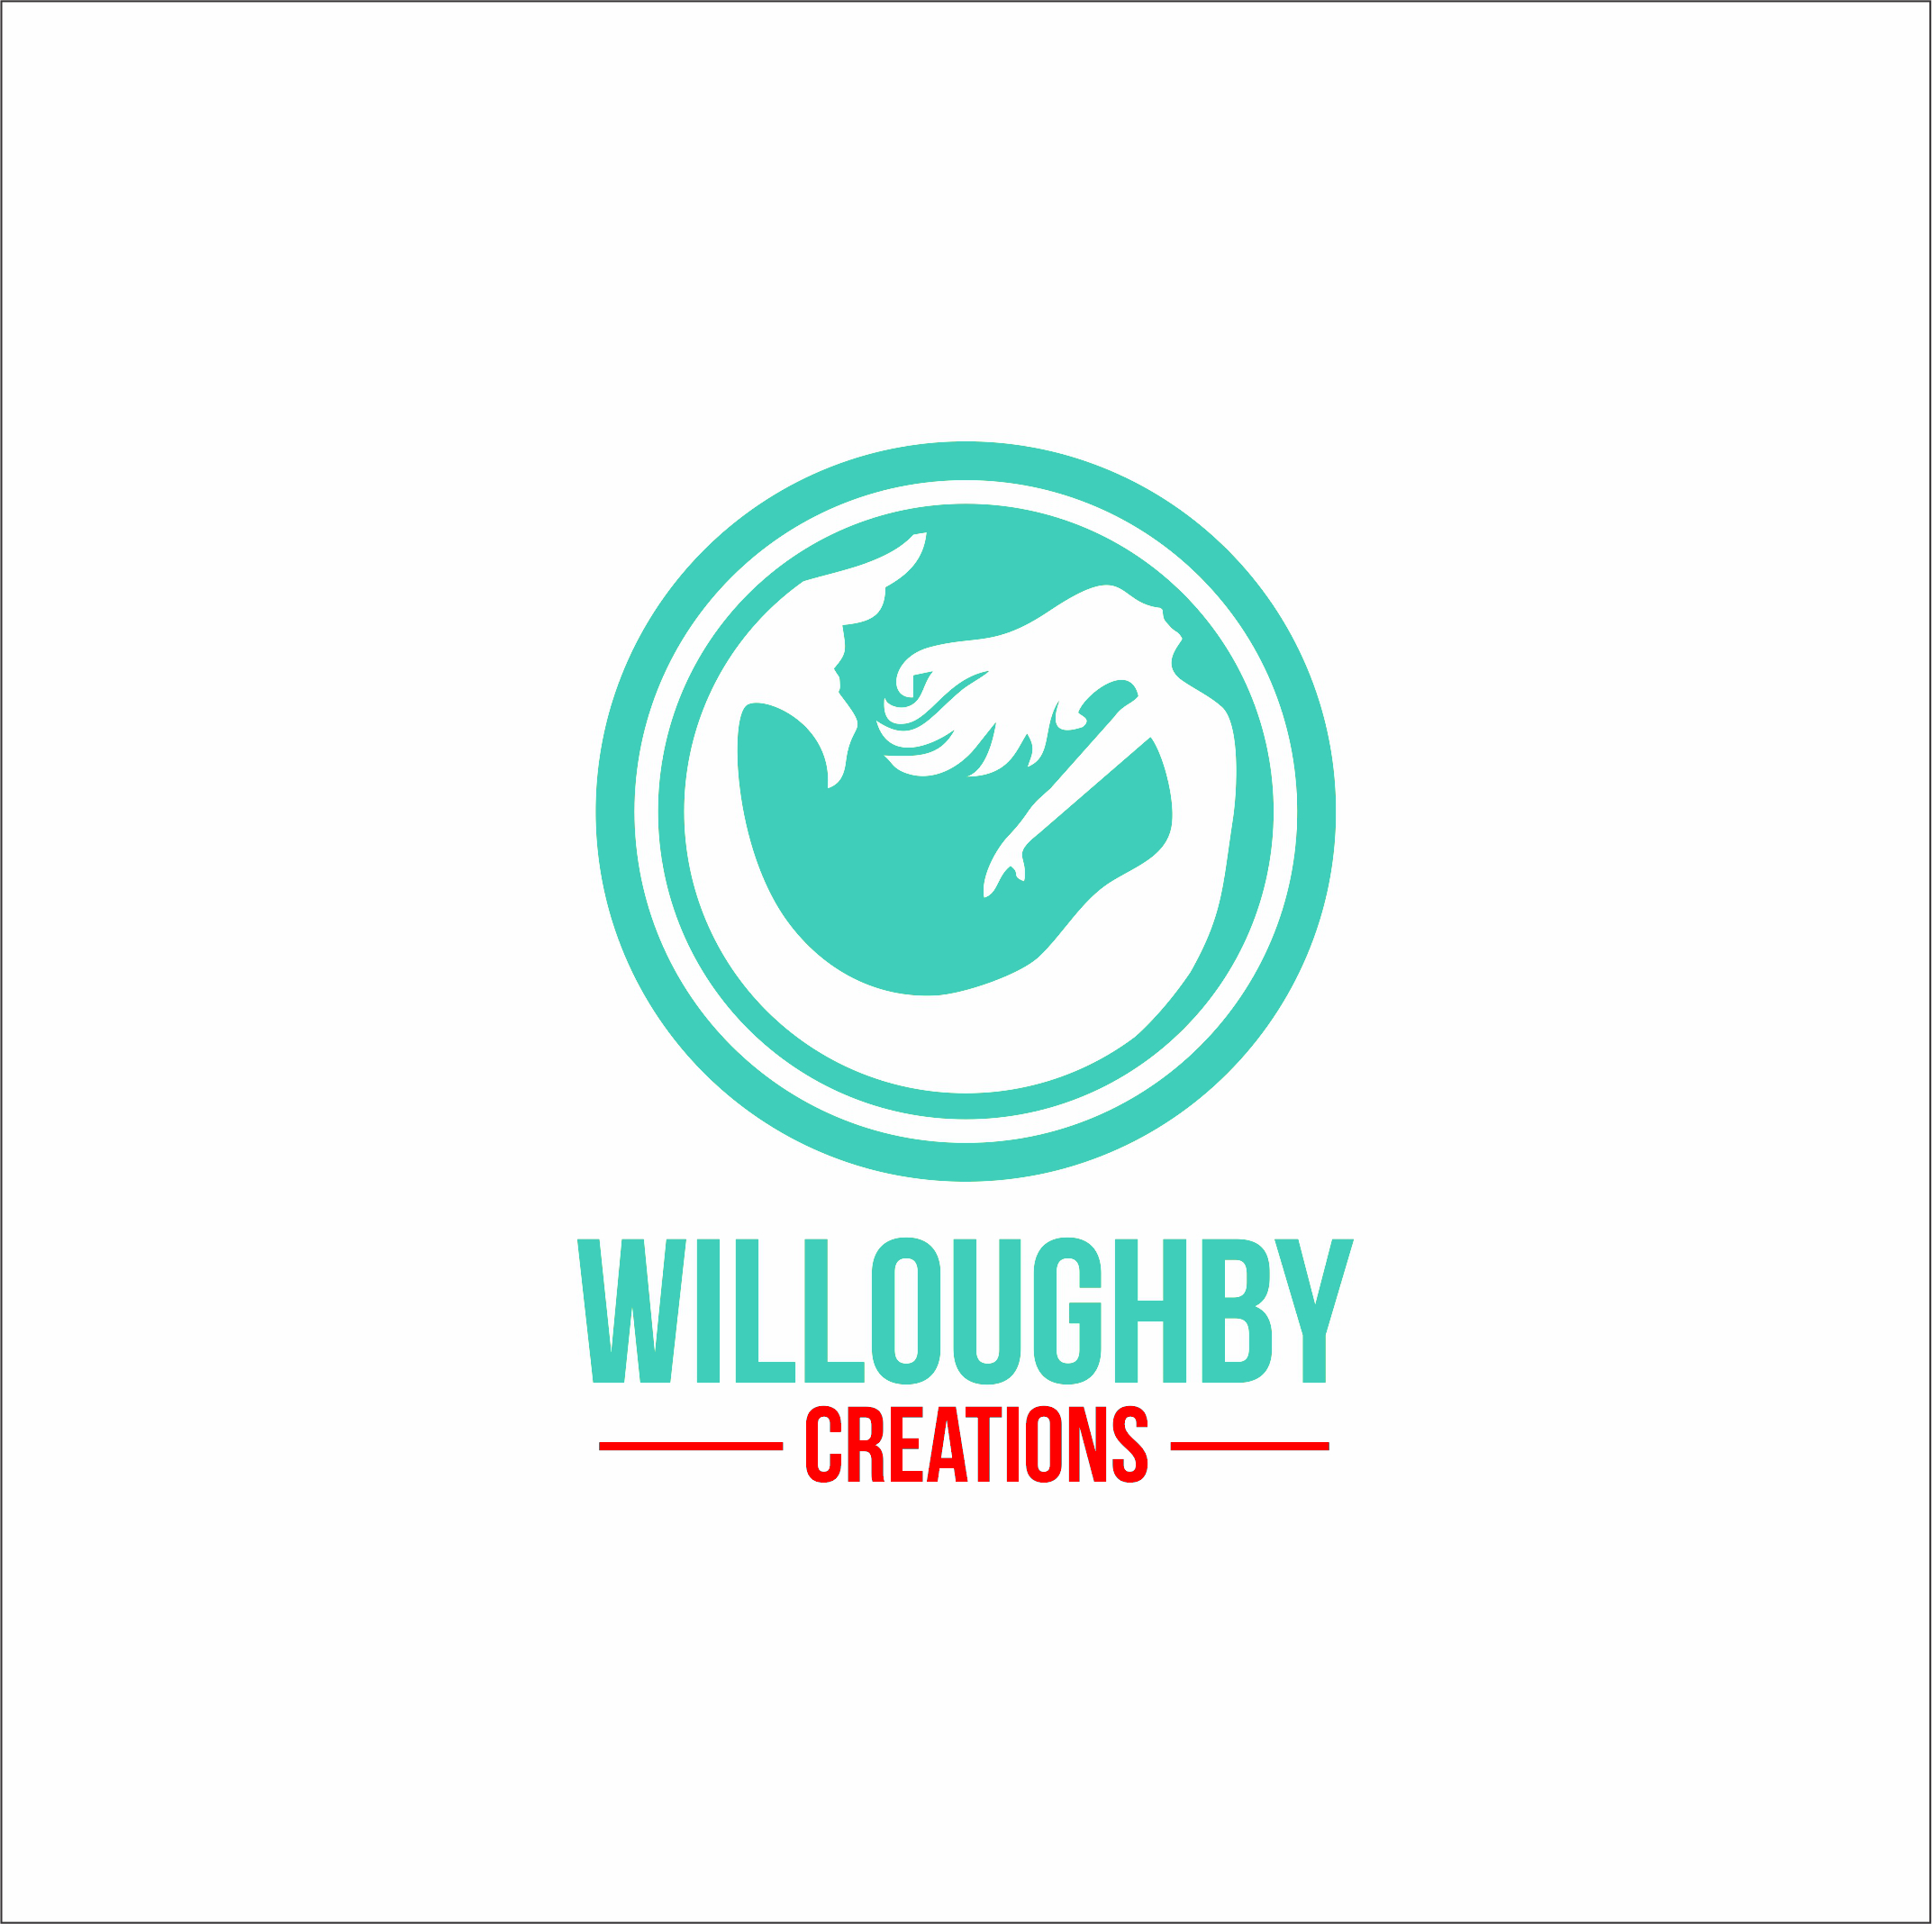 Willoughby Creations